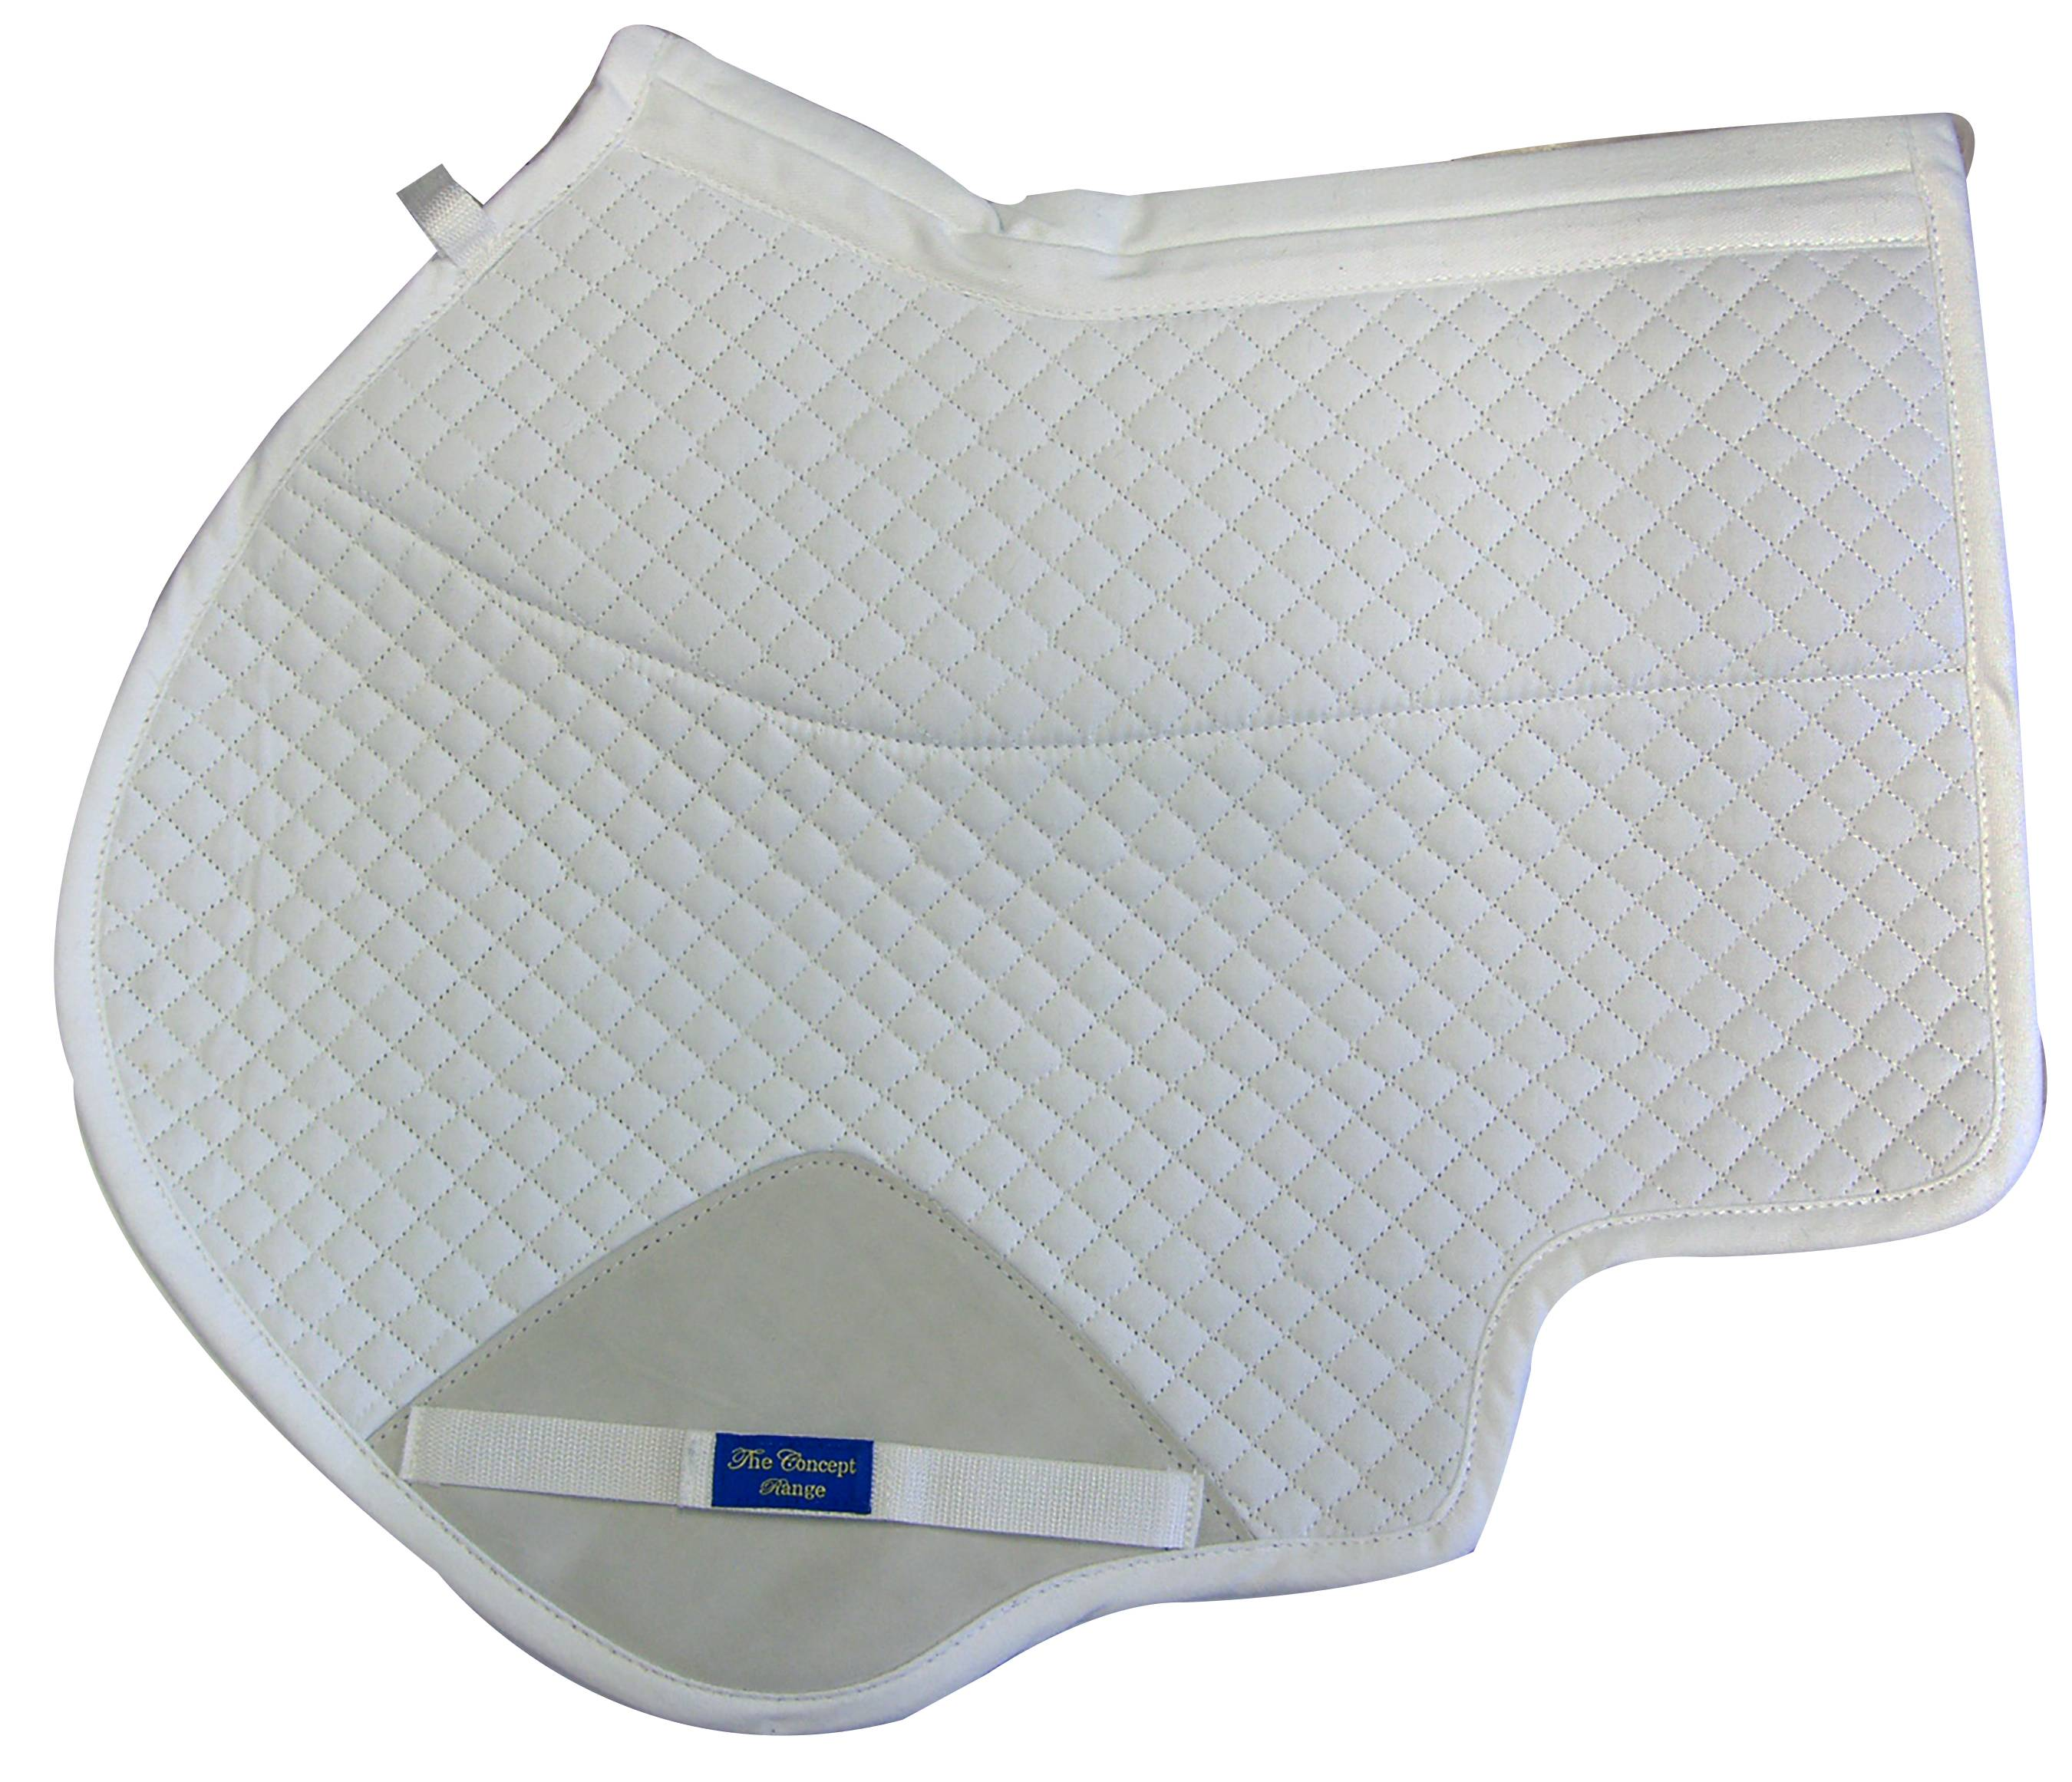 Coronet Concept Jumping Pad - High Wither